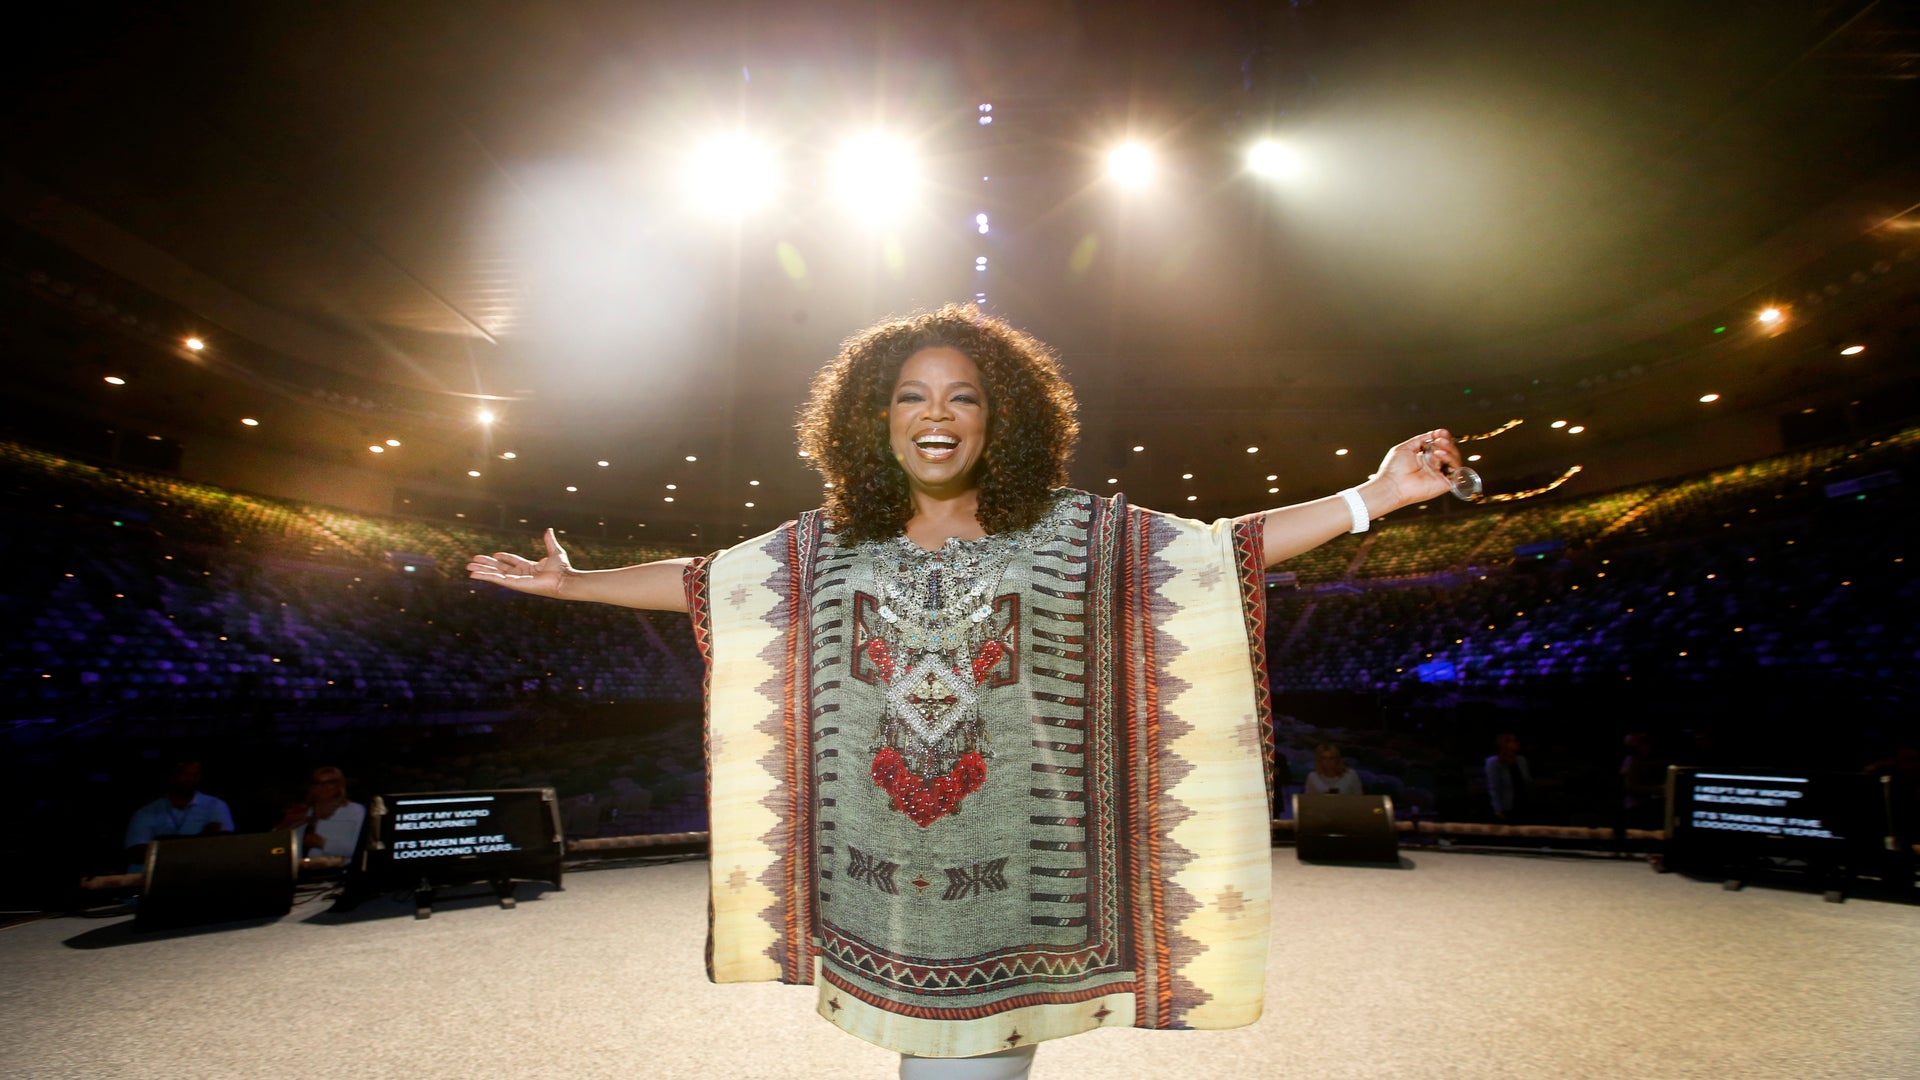 Oprah's Upcoming Memoir Will Give Readers Inspiration to Find 'The Life You Want'